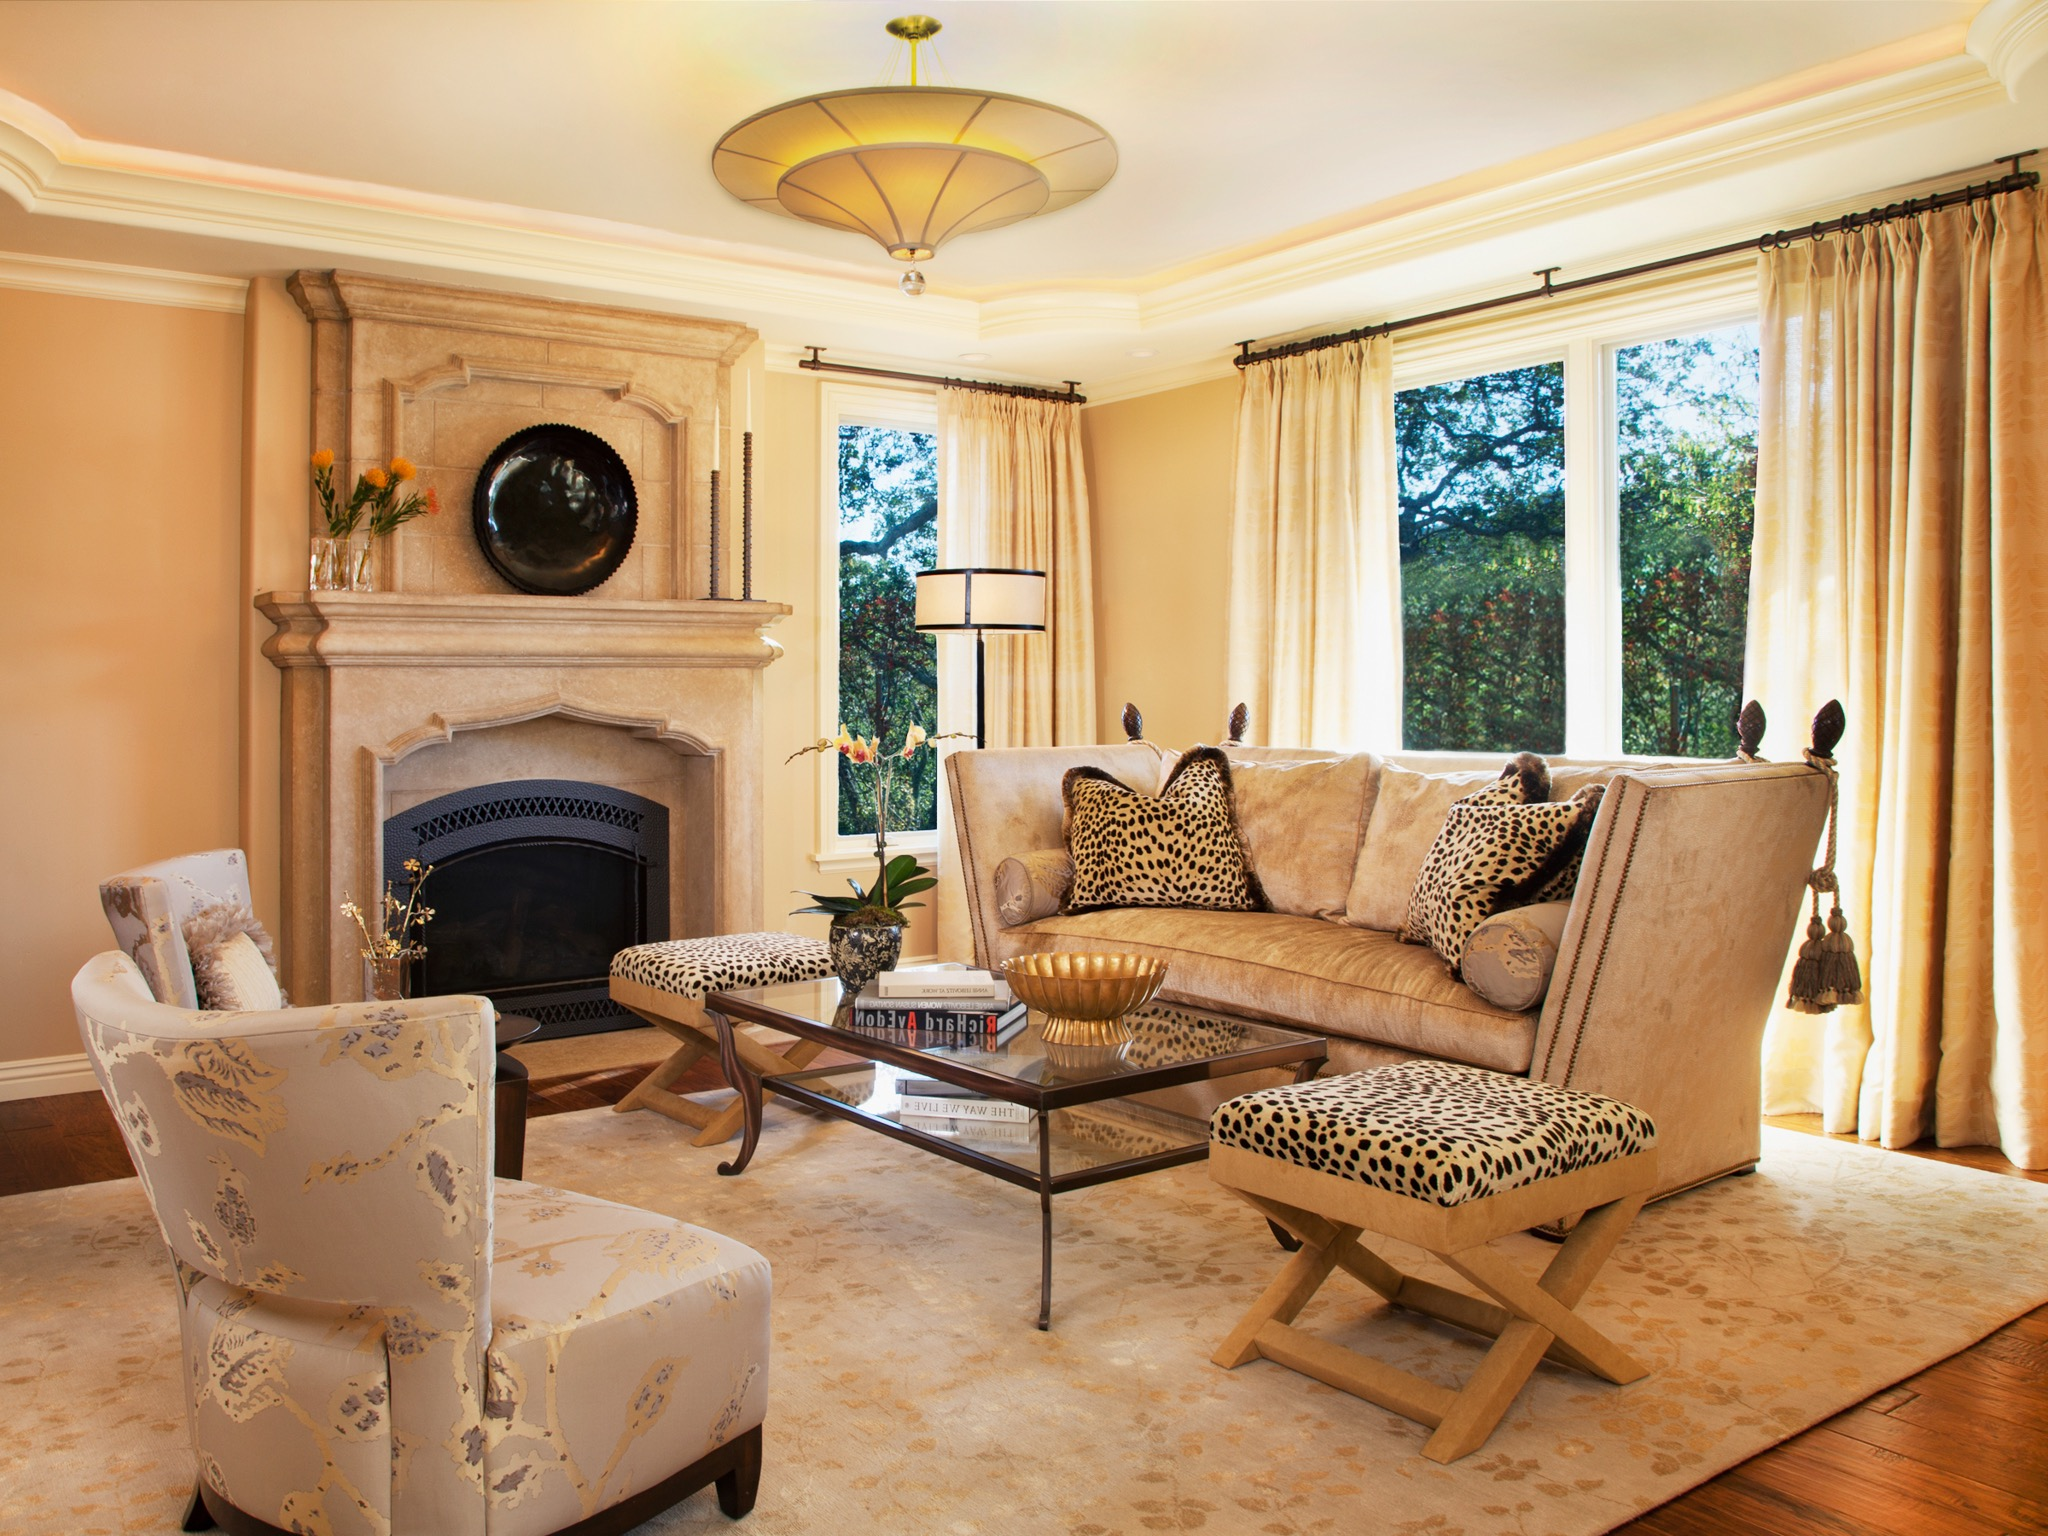 Mediterranean Living Room Design With Relaxed Mood #16216